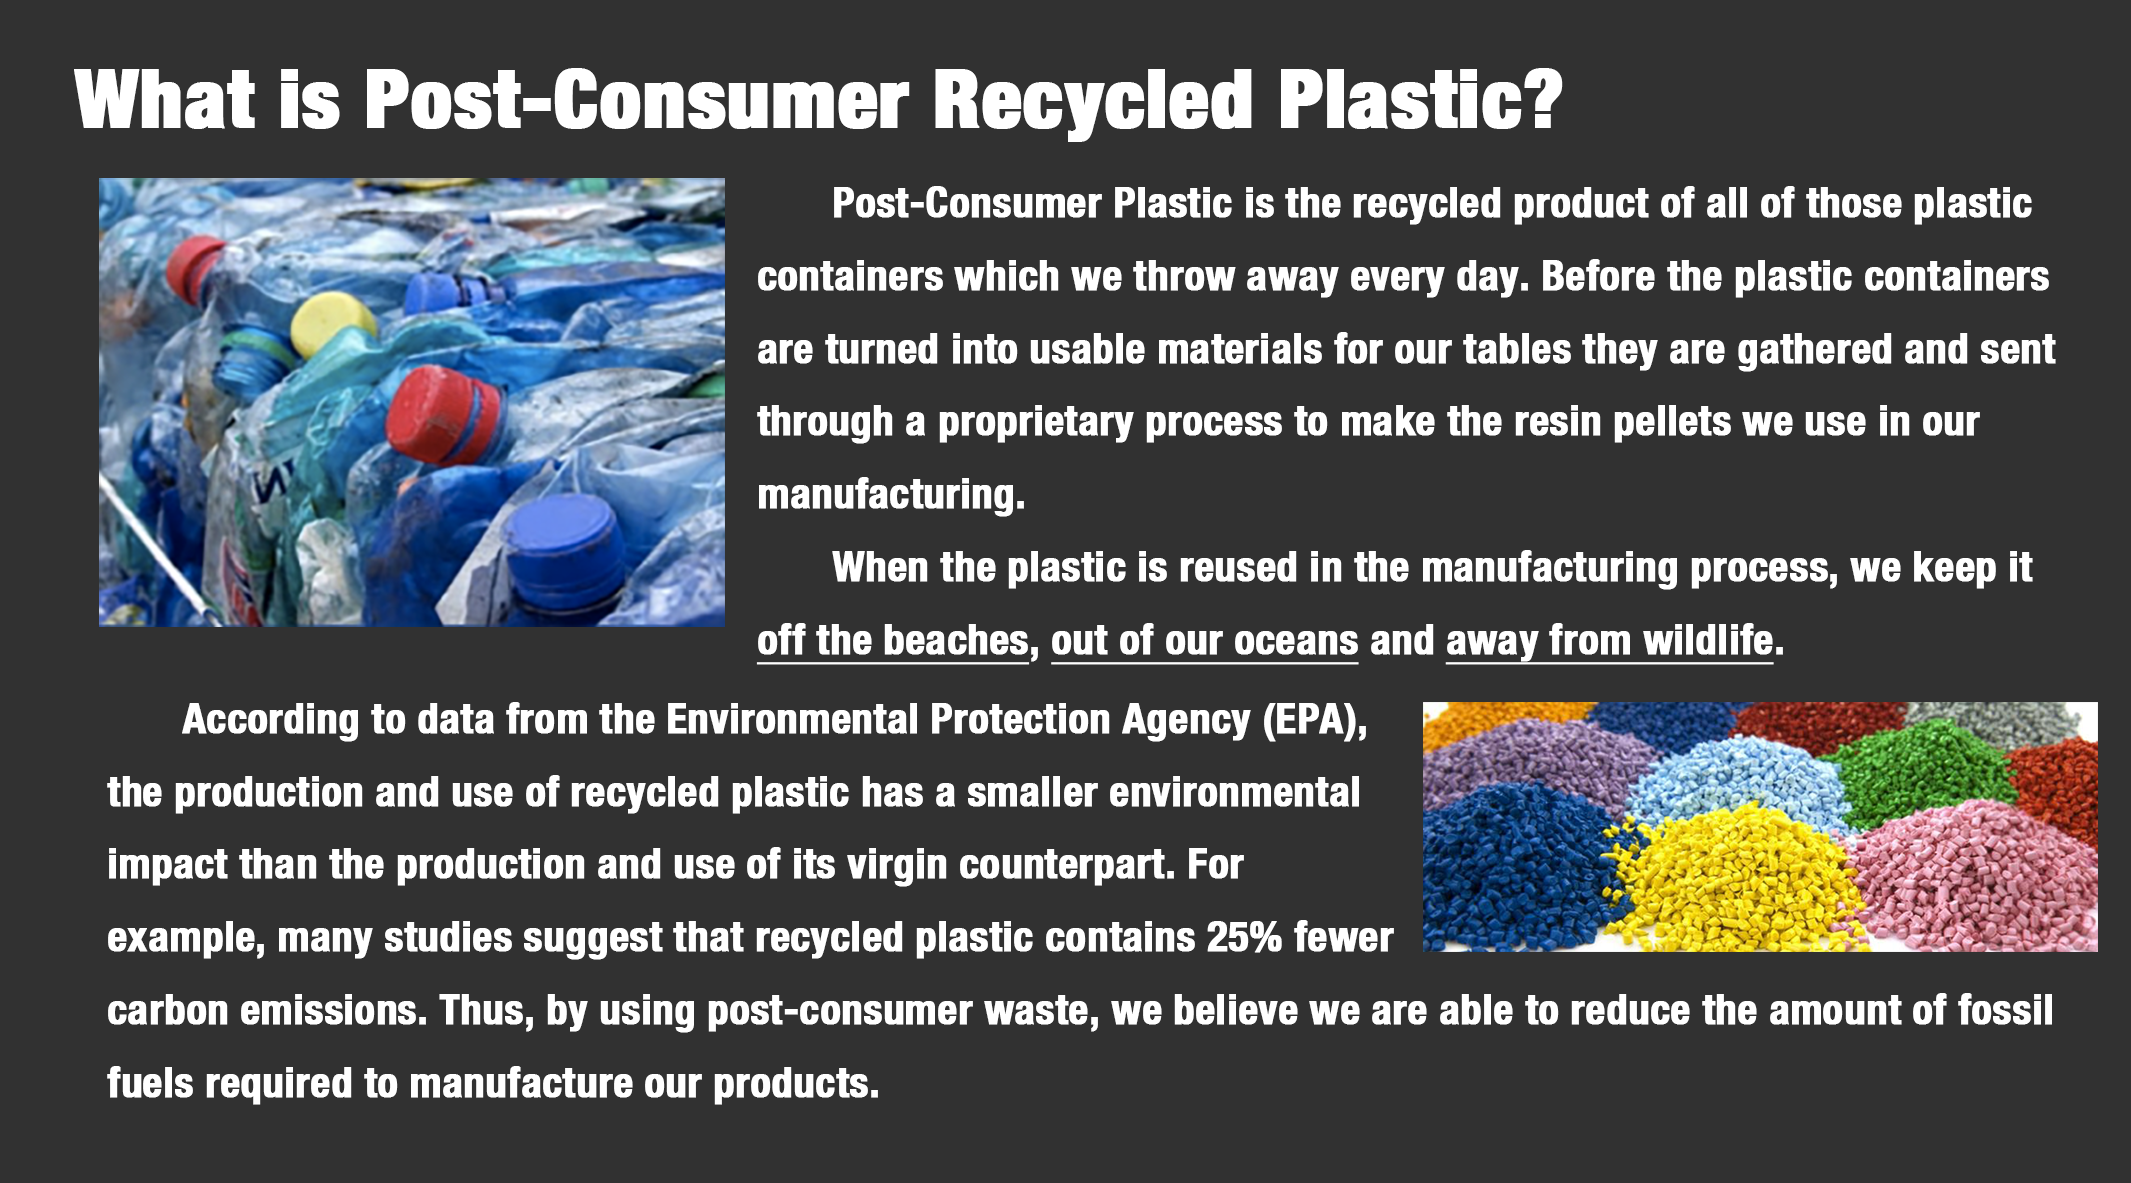 Post-Consumer Plastic is the recycled product of all of those plastic containers which we throw away every day. Before the plastic containers are turned into usable materials for our tables they are gathered and sent through a proprietary process to make the resin pellets we use in our  manufacturing. 	When the plastic is reused in the manufacturing process, we keep it off the beaches, out of our oceans and away from wildlife.  	According to data from the Environmental Protection Agency (EPA),  the production and use of recycled plastic has a smaller environmental  impact than the production and use of its virgin counterpart. For  example, many studies suggest that recycled plastic contains 25% fewer  carbon emissions. Thus, by using post-consumer waste, we believe we are able to reduce the amount of fossil  fuels required to manufacture our products.